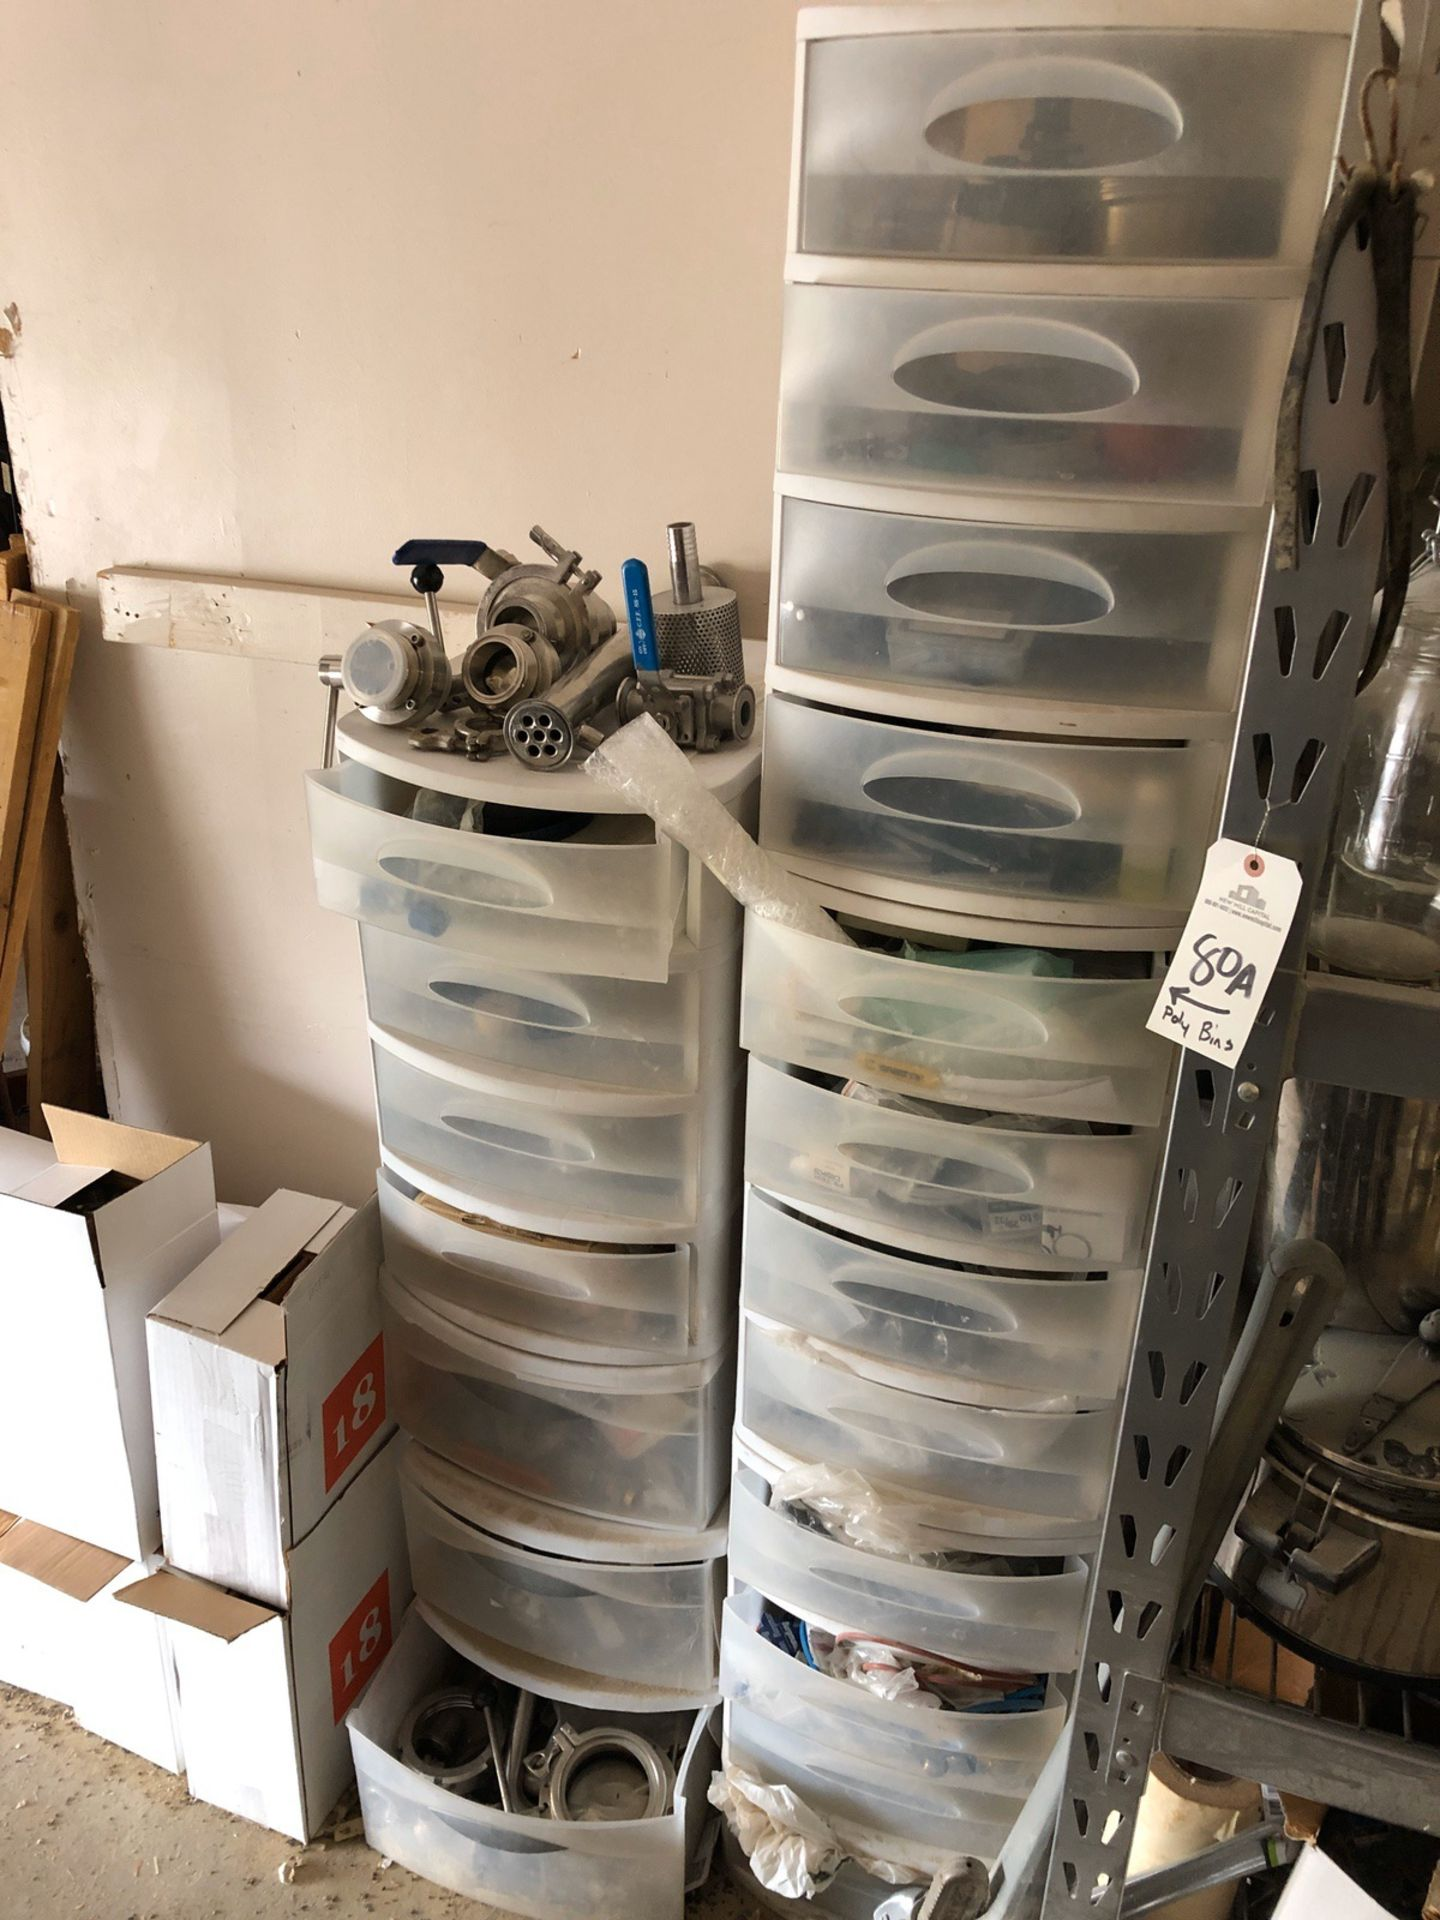 Lot 80A - Plastic Bins and Contents | Rig Fee: $150 or HC